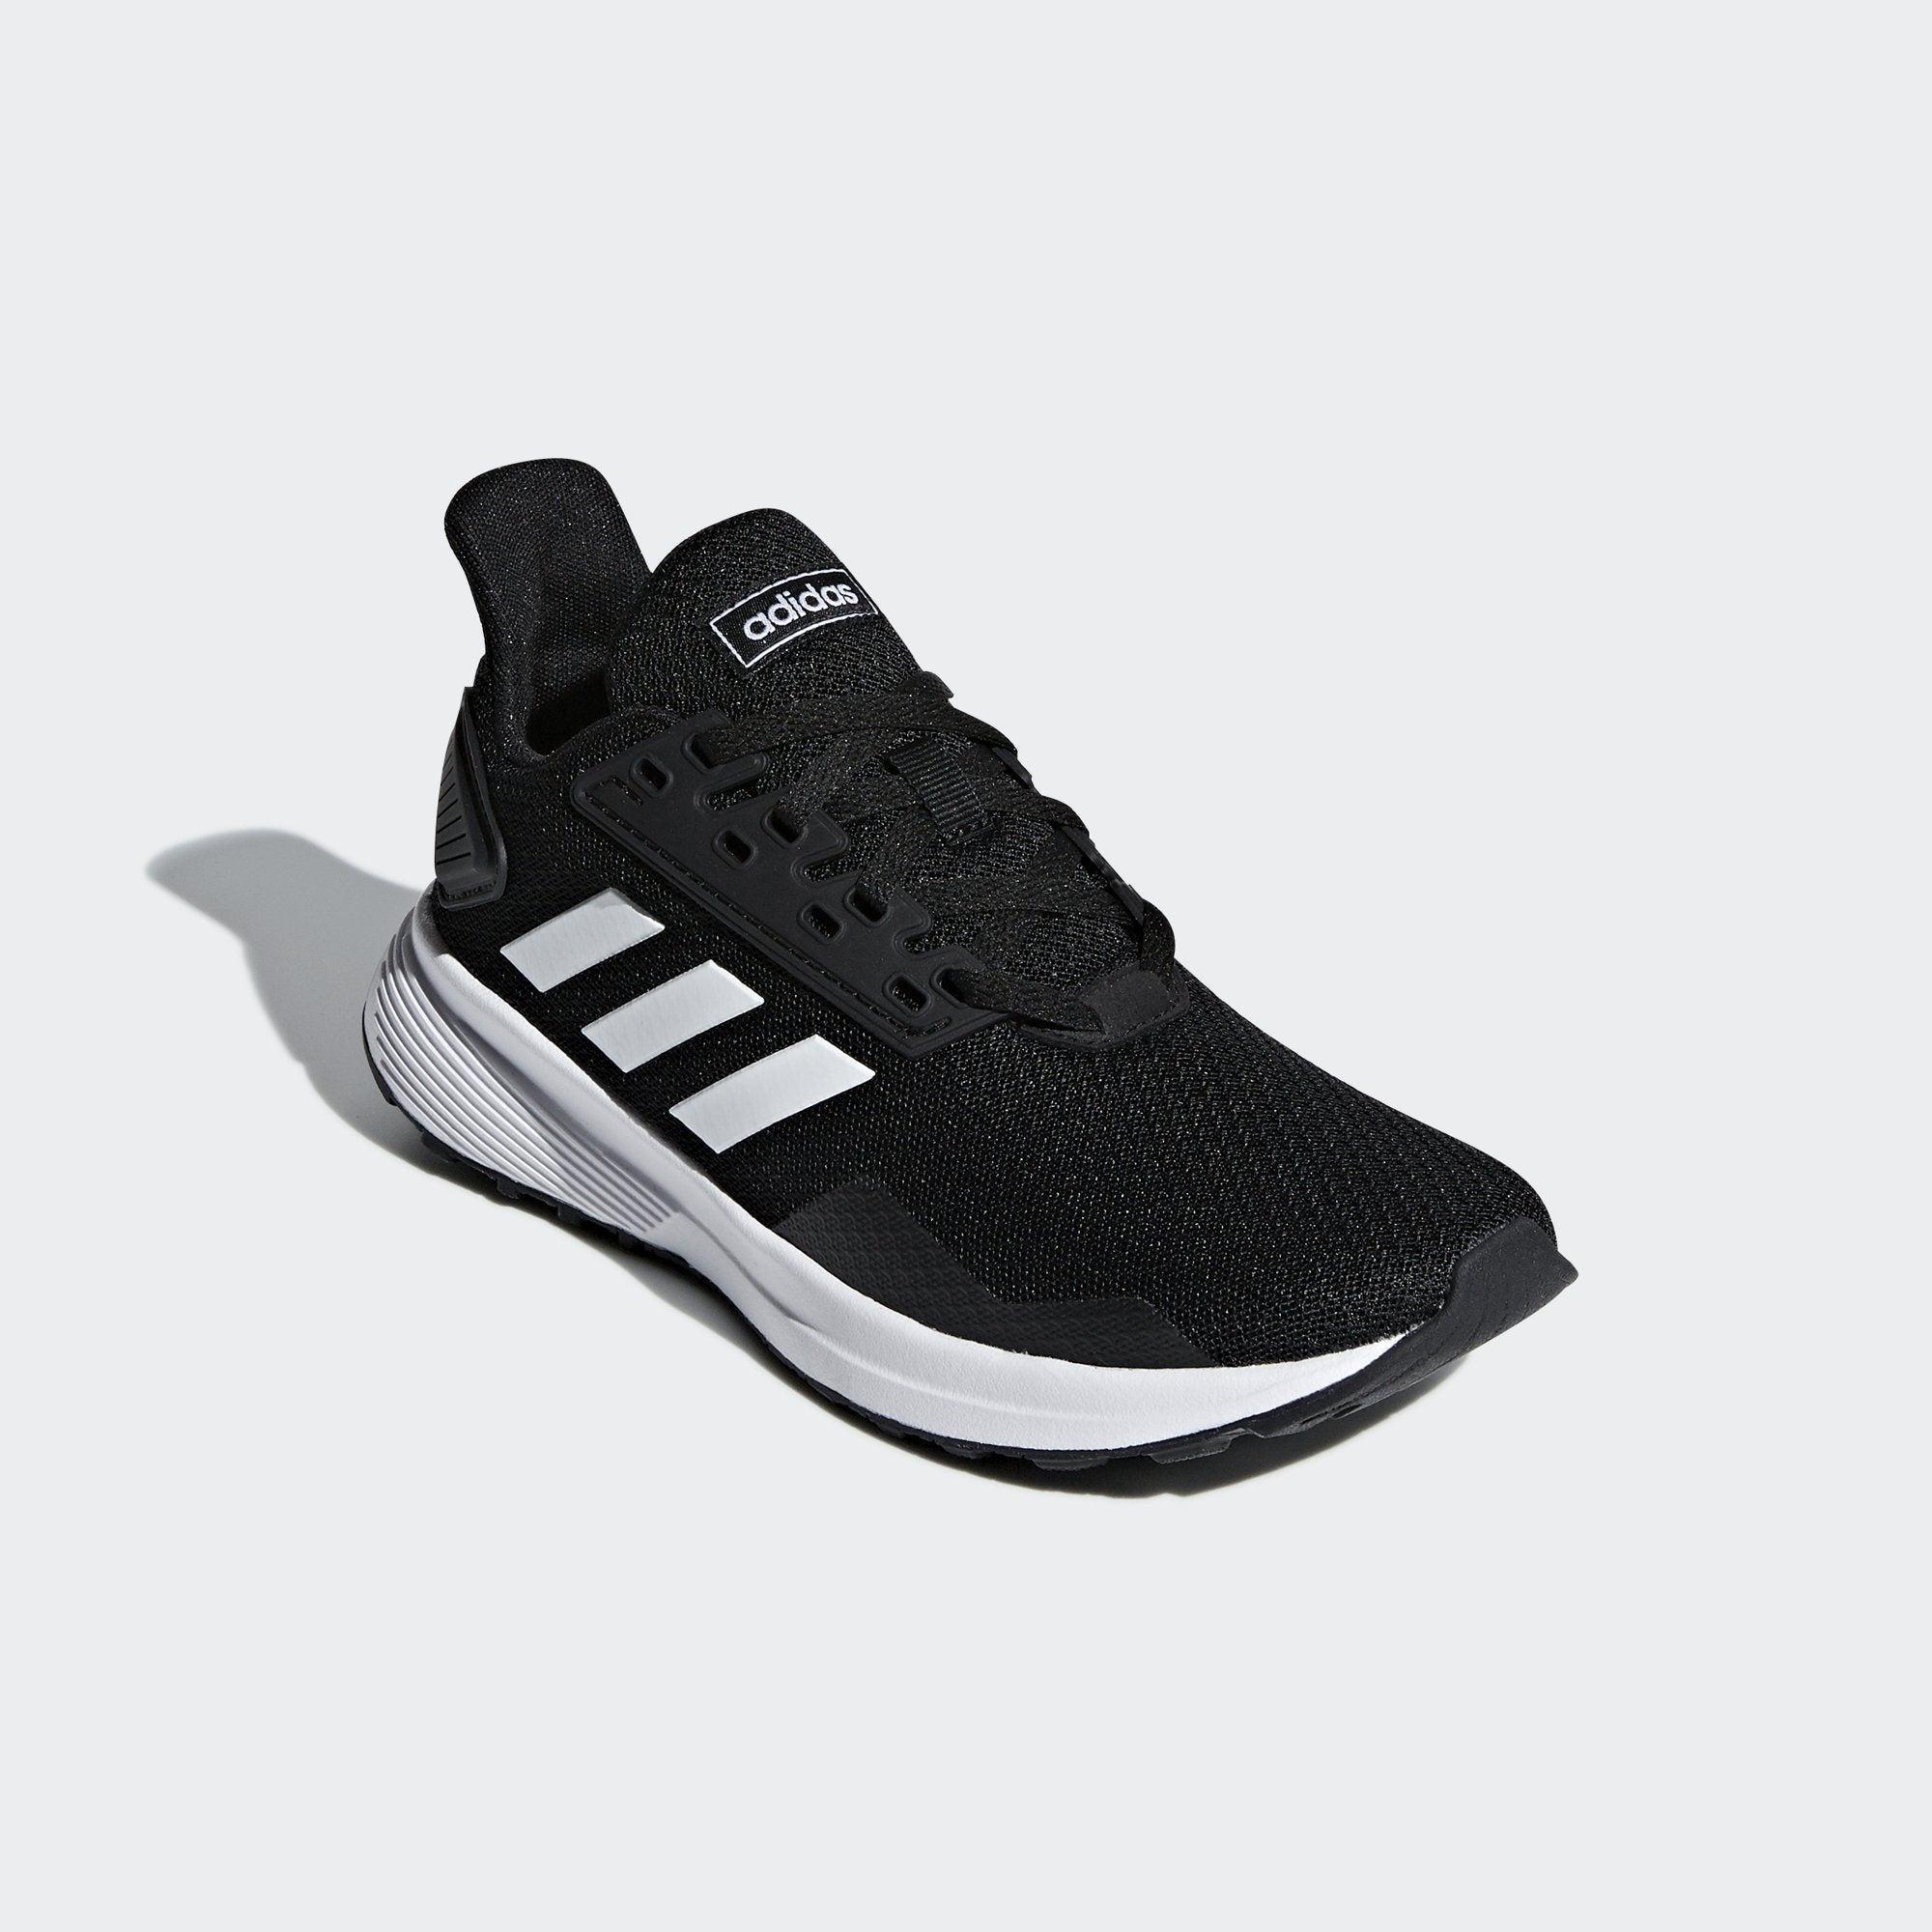 Adidas Kids Duramo 9 Shoes - core black-ftwr white-core black Kids Footwear Adidas